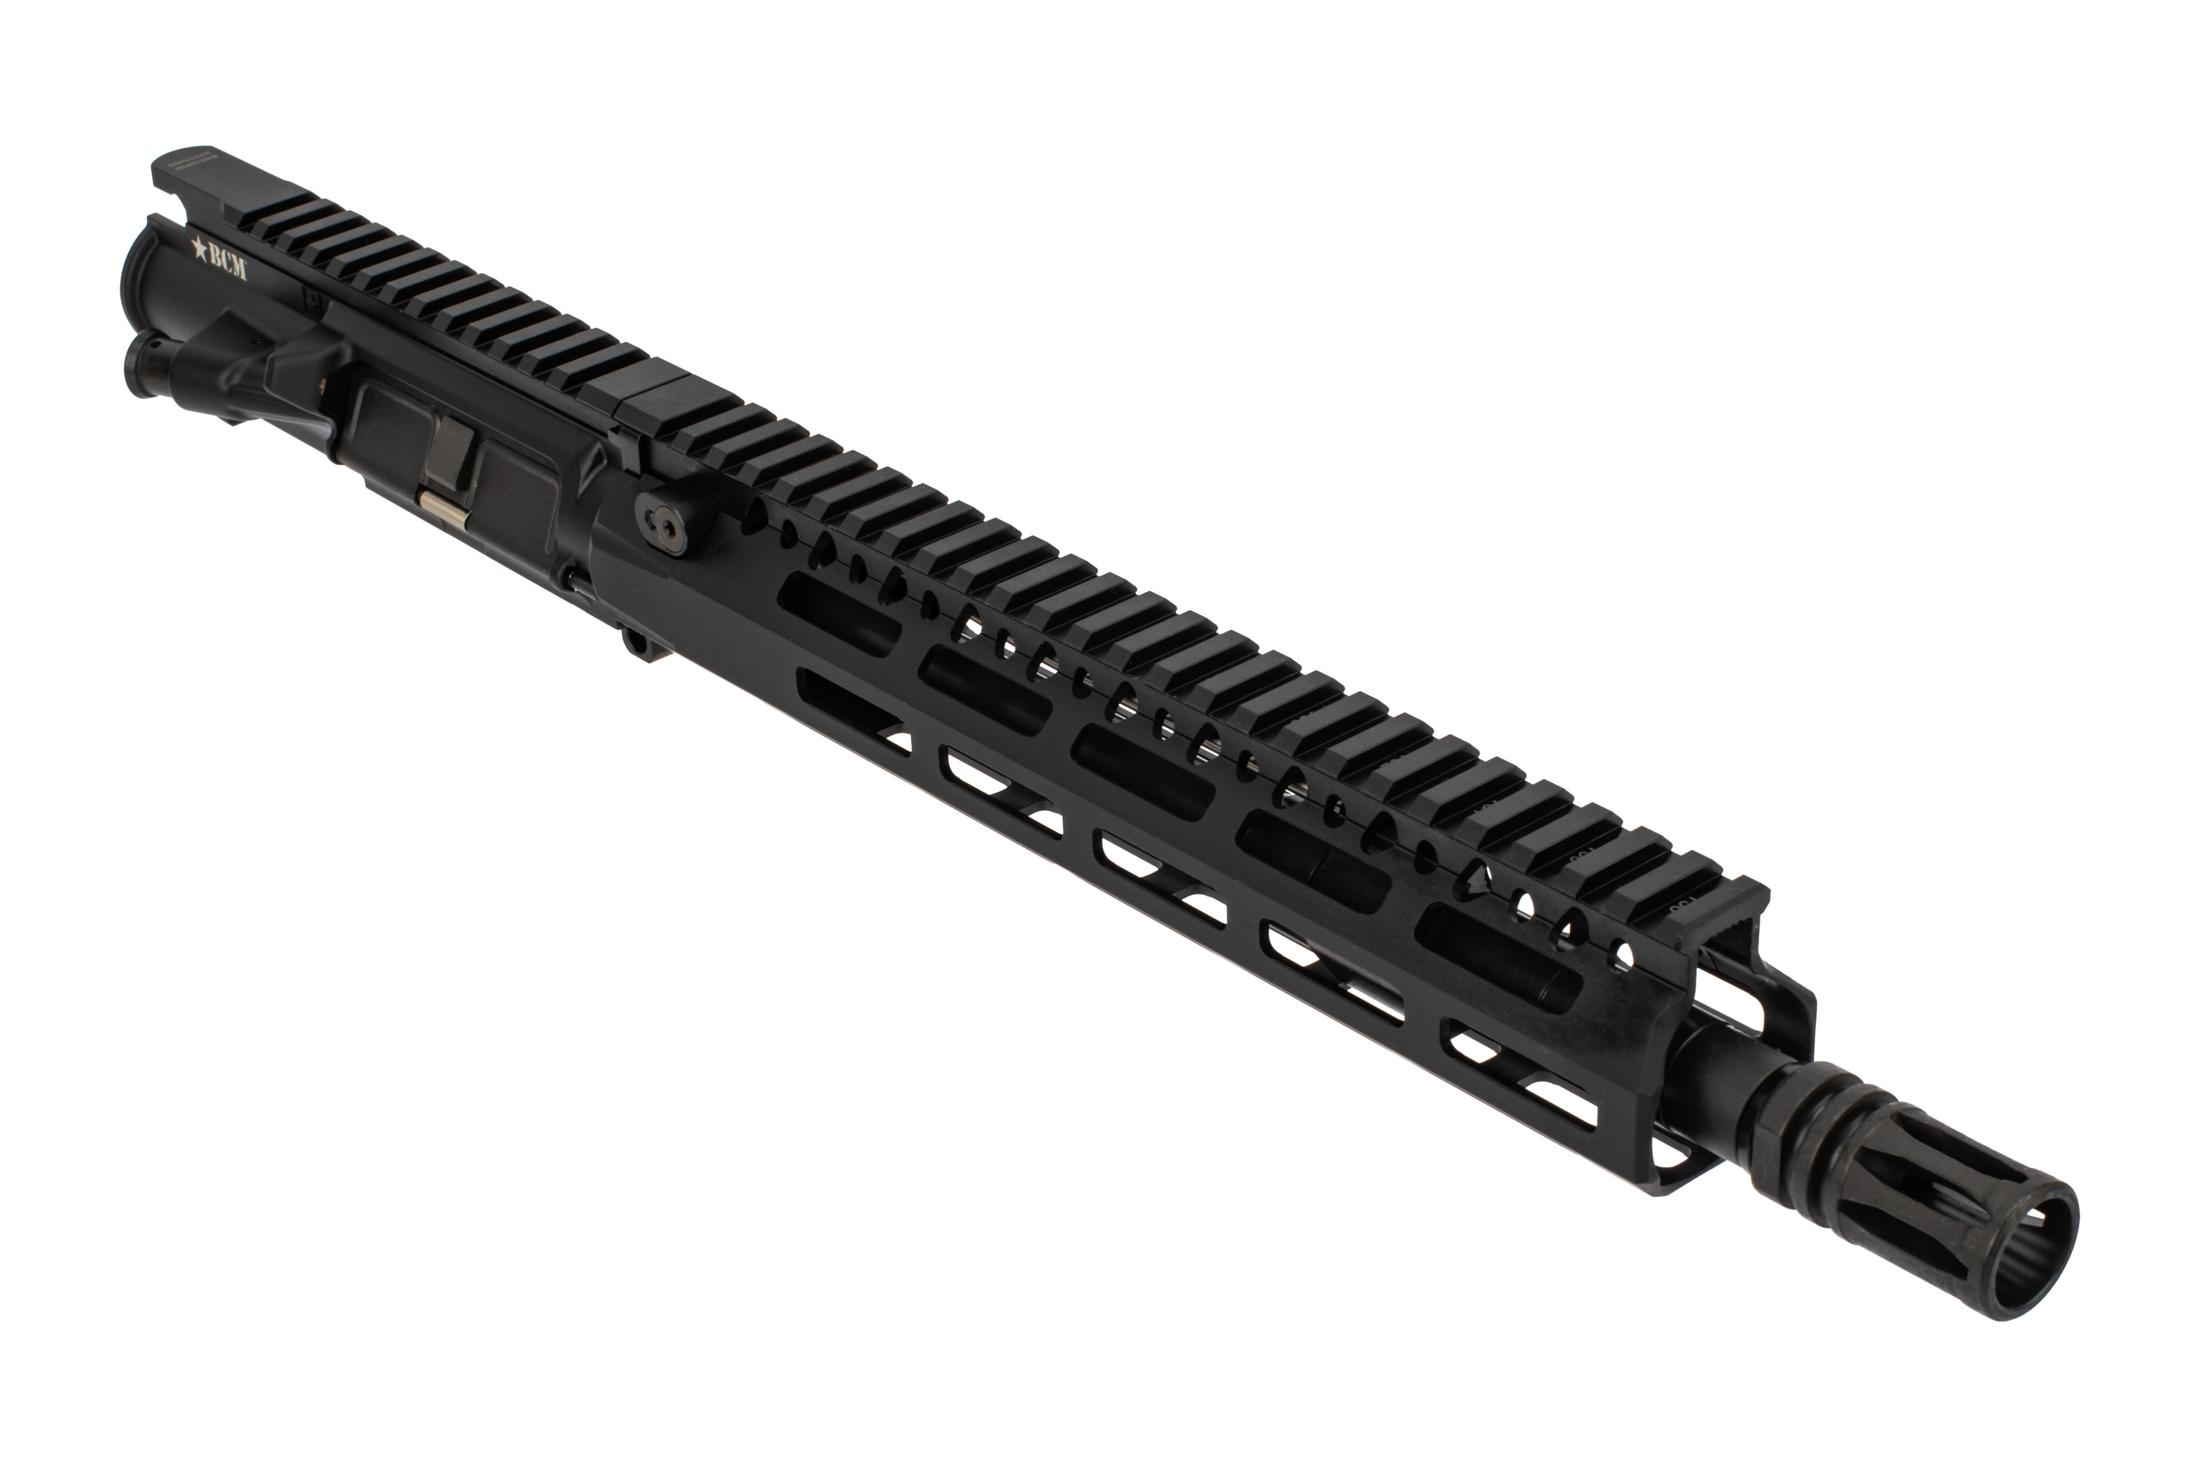 Bravo Company Manufacturing MK2 BFH Barreled upper features a cold hammer forged 5.56 barrel